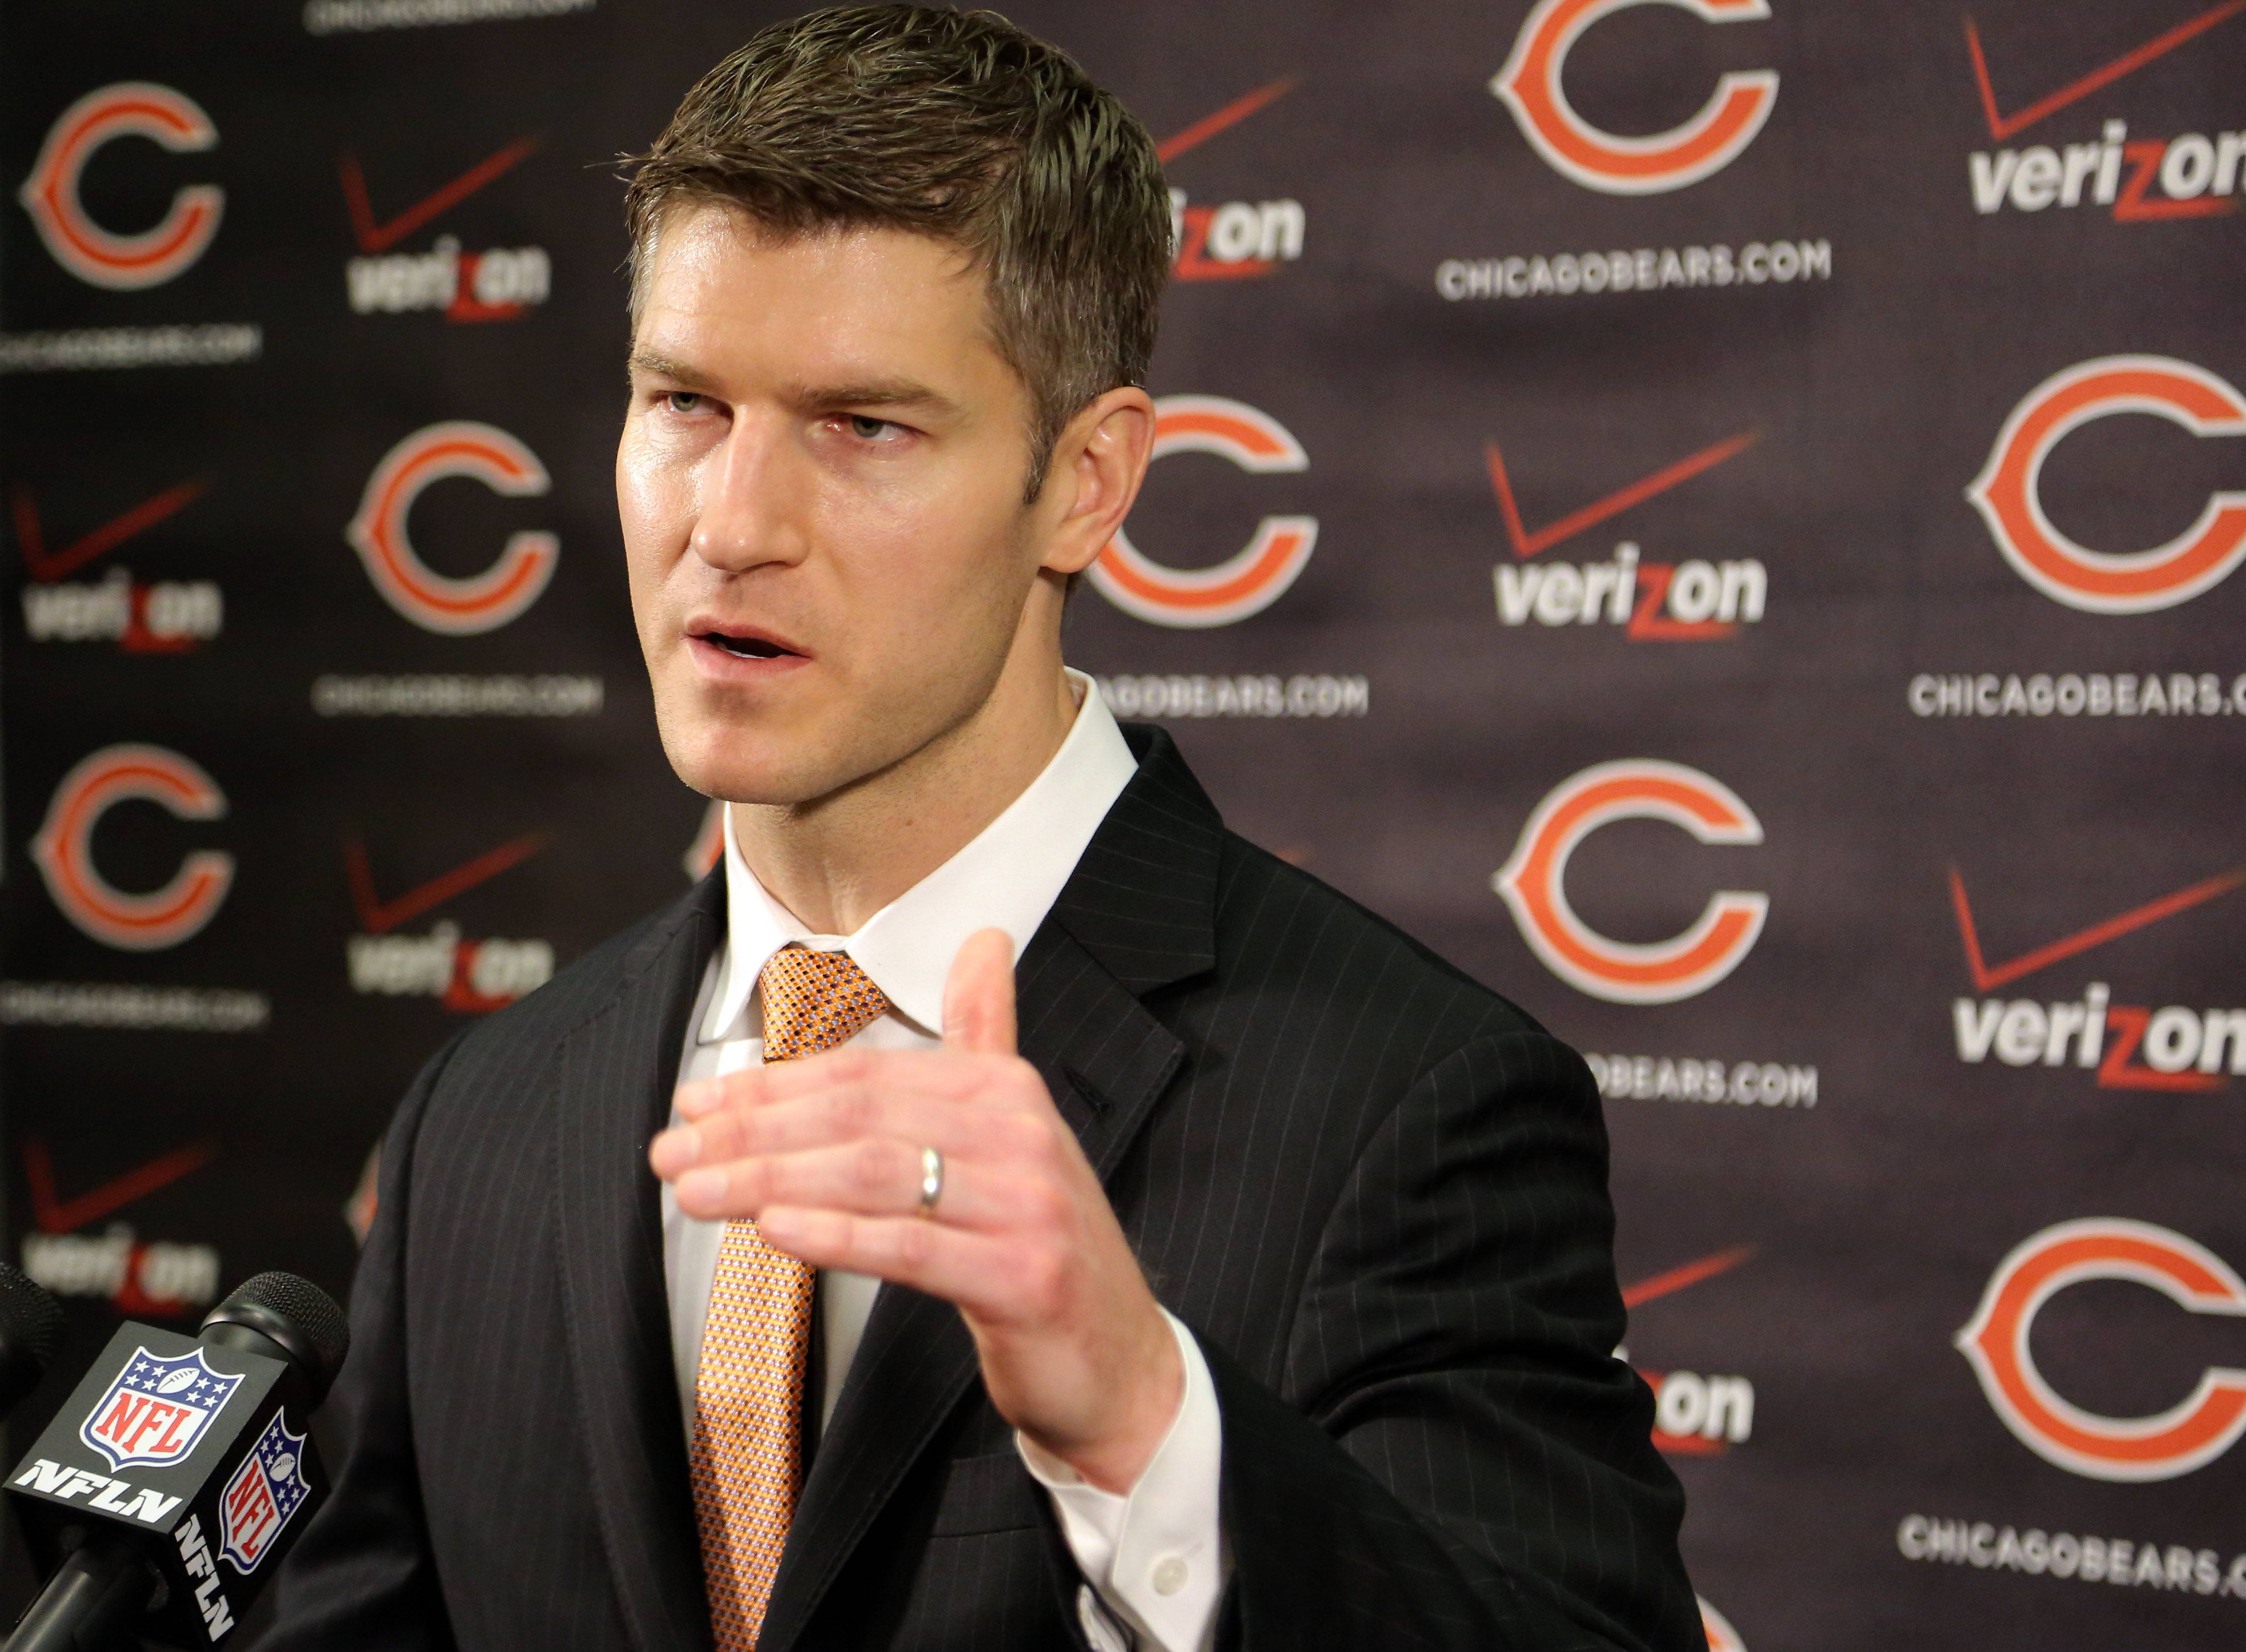 Ryan Pace, the new general manager for the Chicago Bears, says he will have final say on all football decisions.